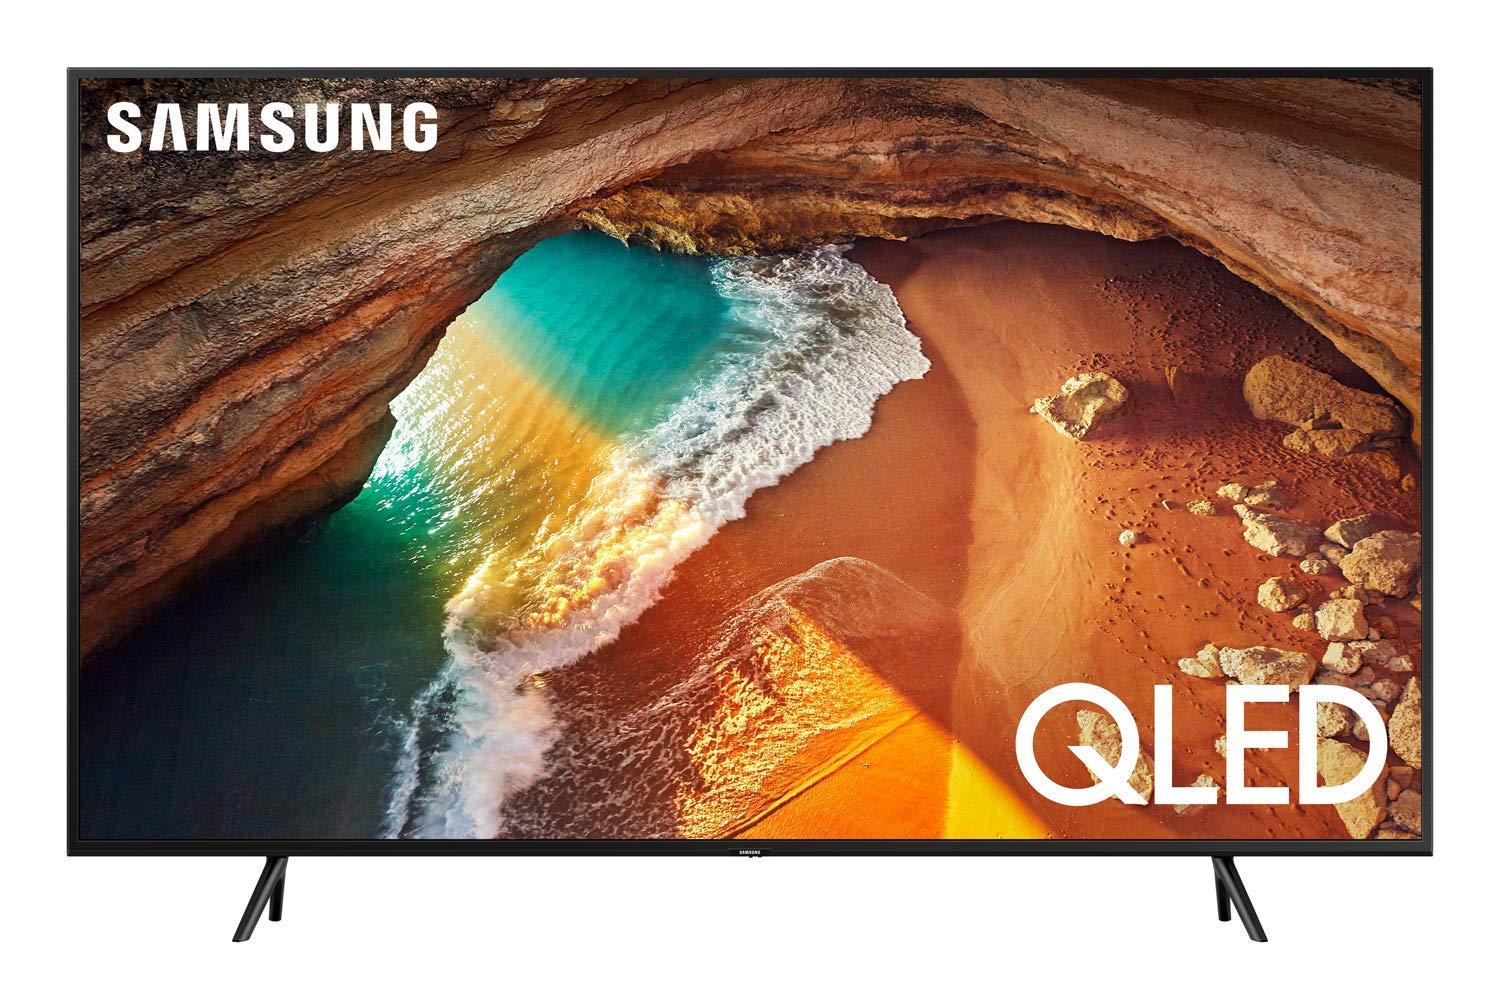 Samsung Flat 65 inch QLED 4k HD Smart TV